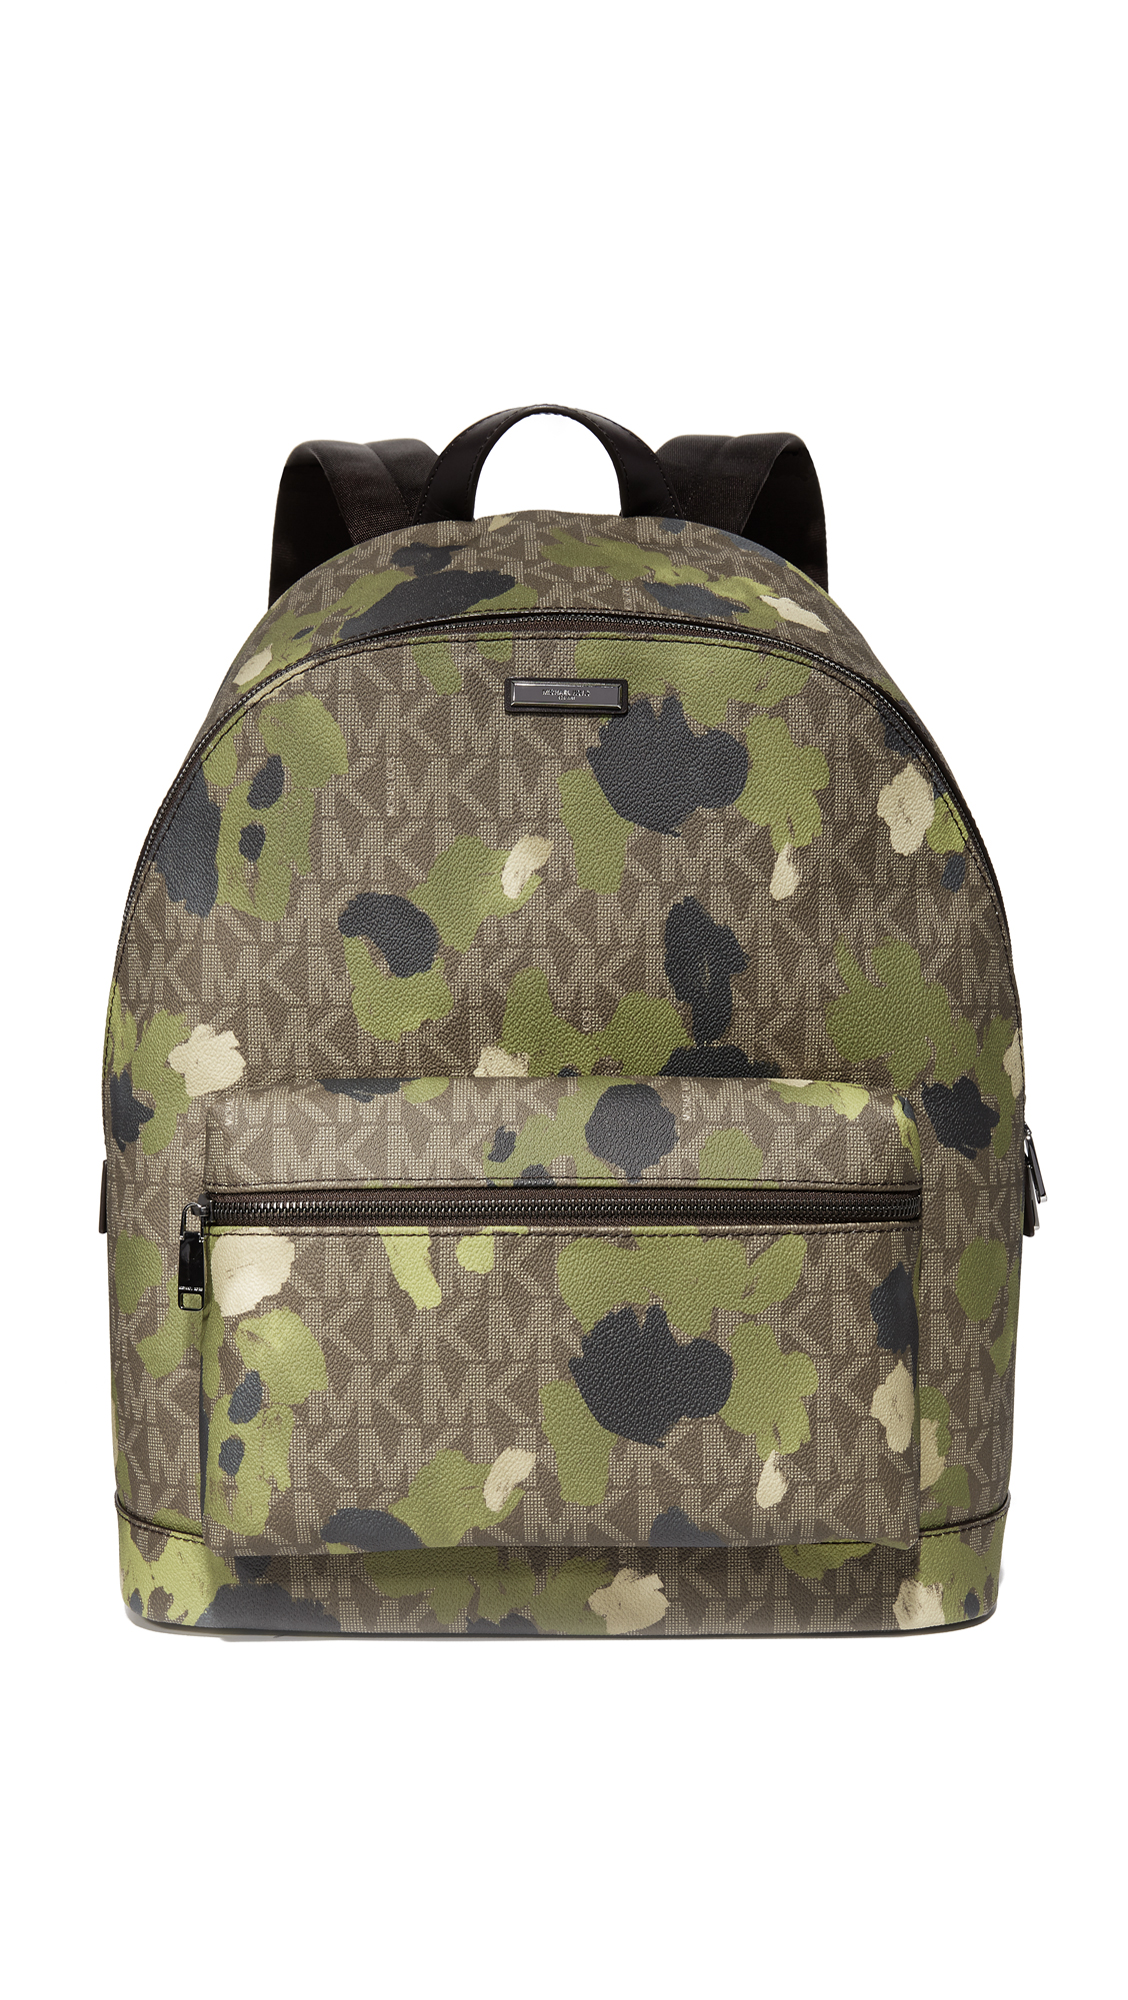 79c2e8a1f638 Camouflage Backpack India- Fenix Toulouse Handball